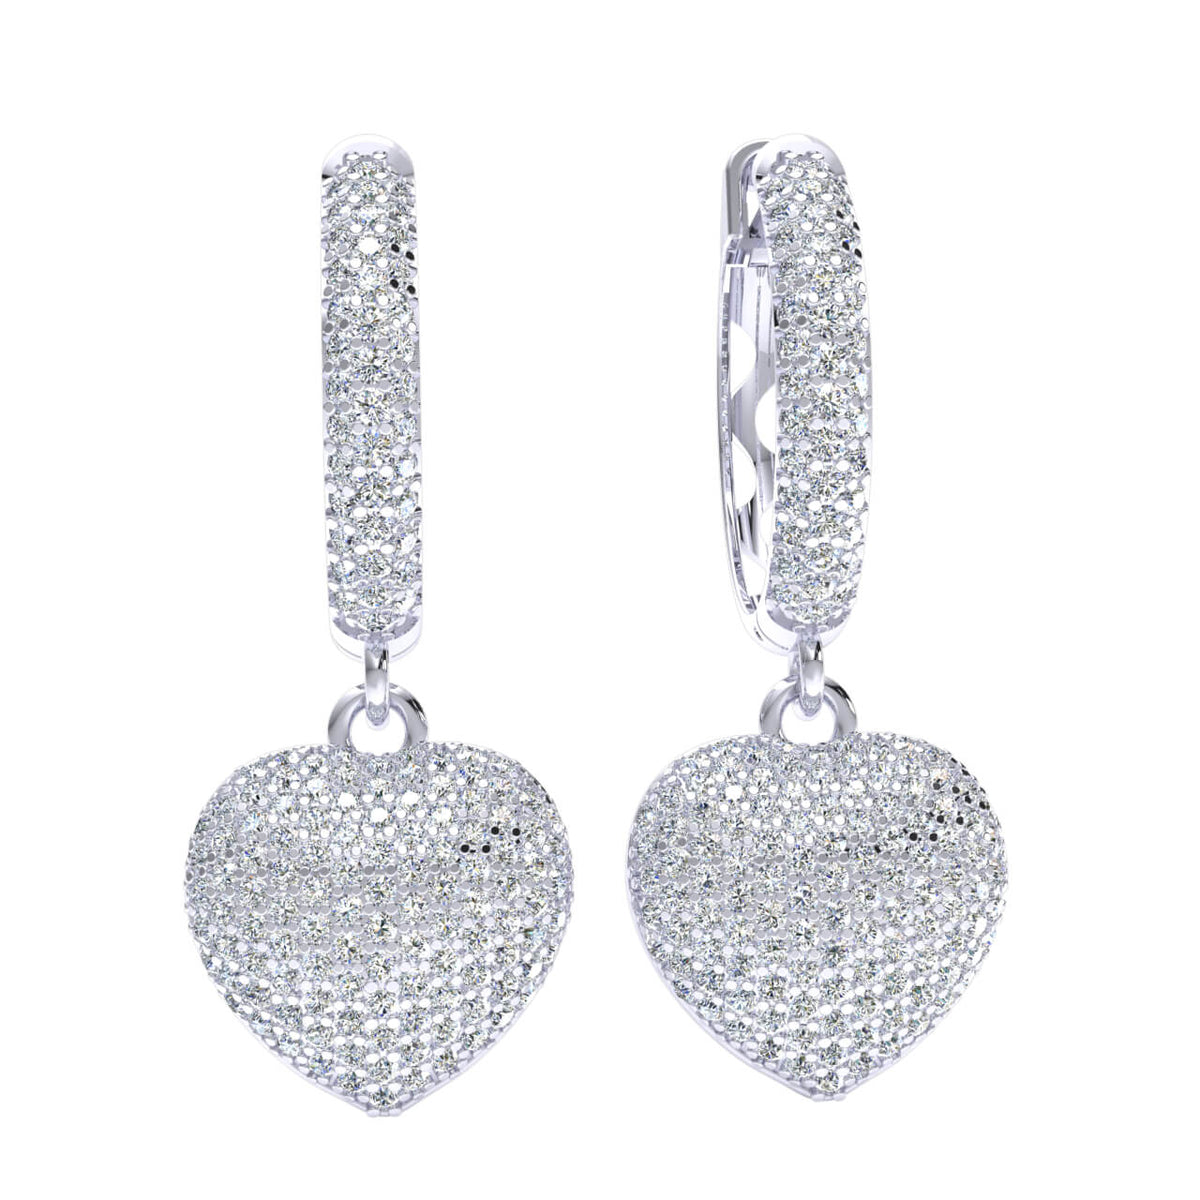 1.20 Ct Heart Cluster Round GH I1-I2 Diamond Fancy Earrings 925 Sterling Silver